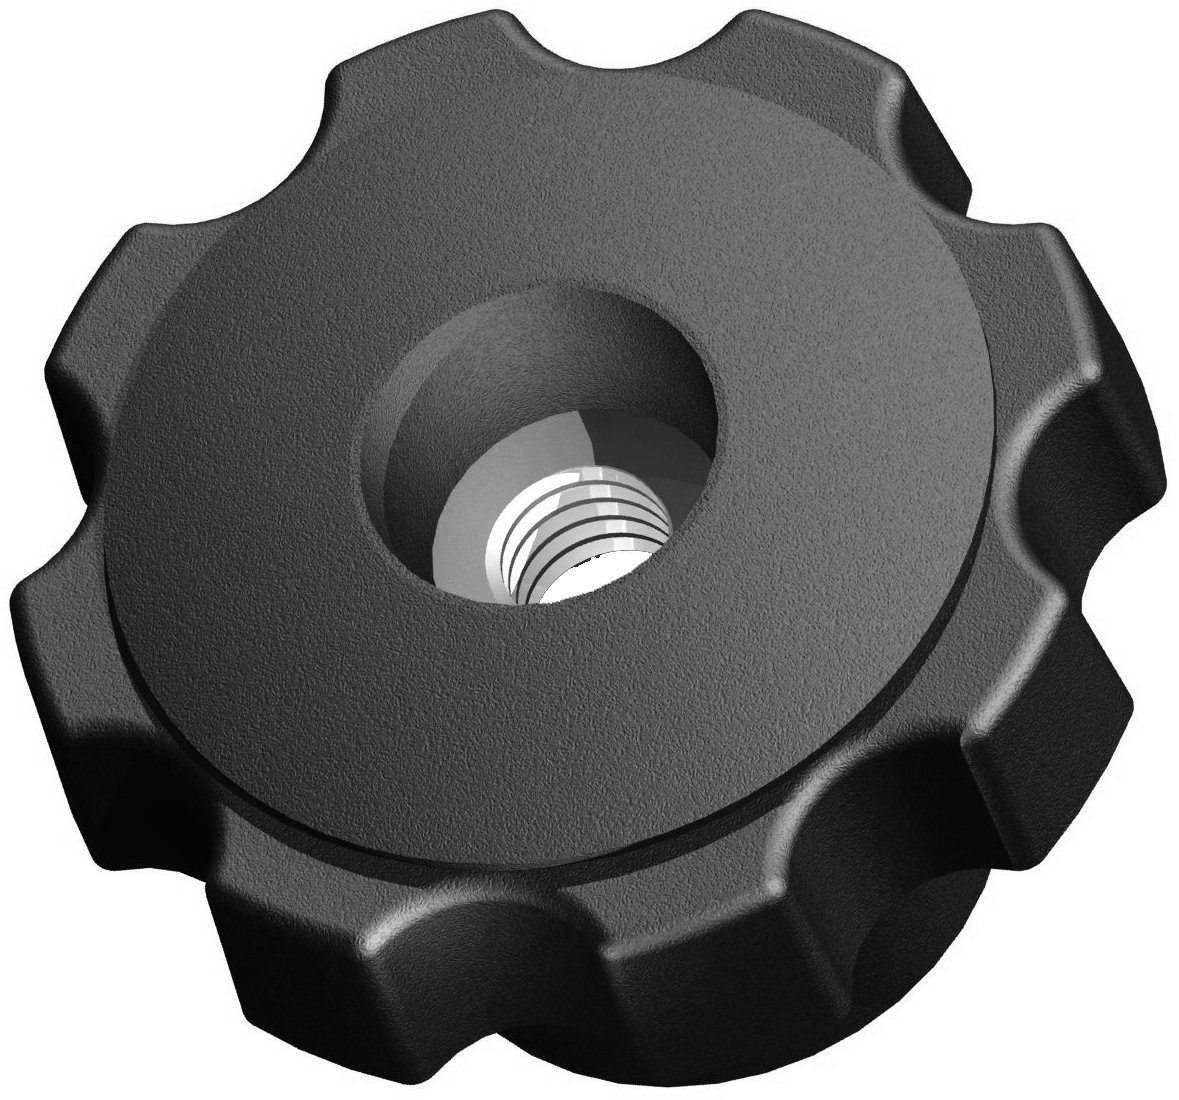 Innovative Components AN8C-F7S21 2.48'' Fluted knob thru hole 1/2 - 13 steel zinc insert soft touch (Pack of 10)